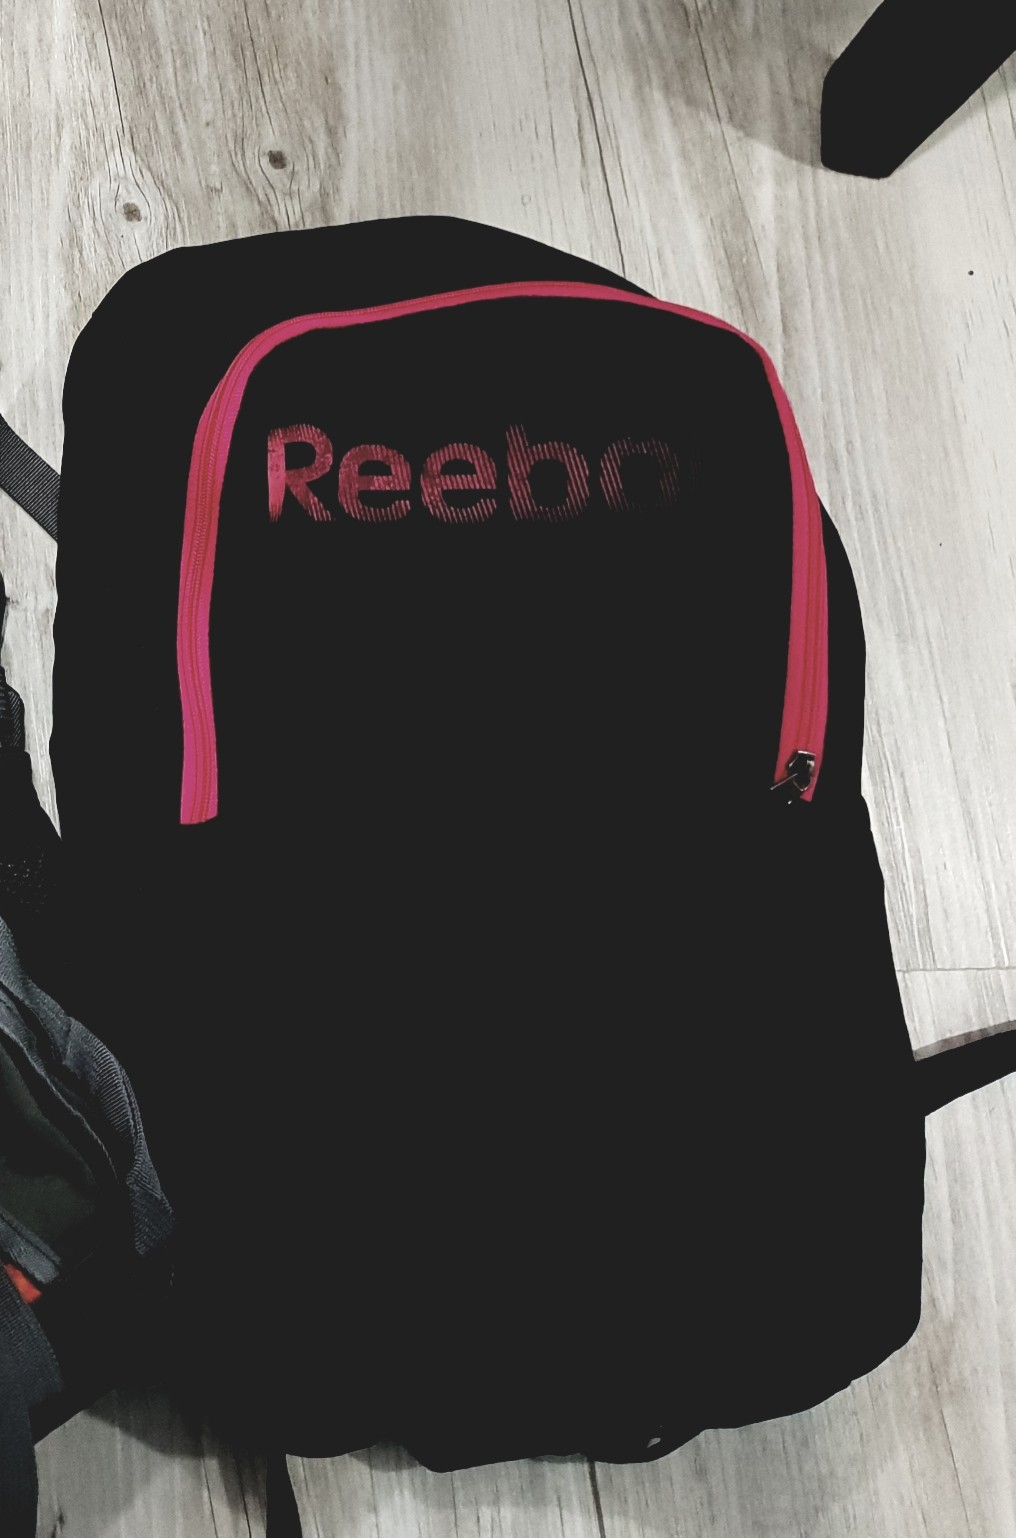 bd0a0df3e19d REEBOK light bagpack